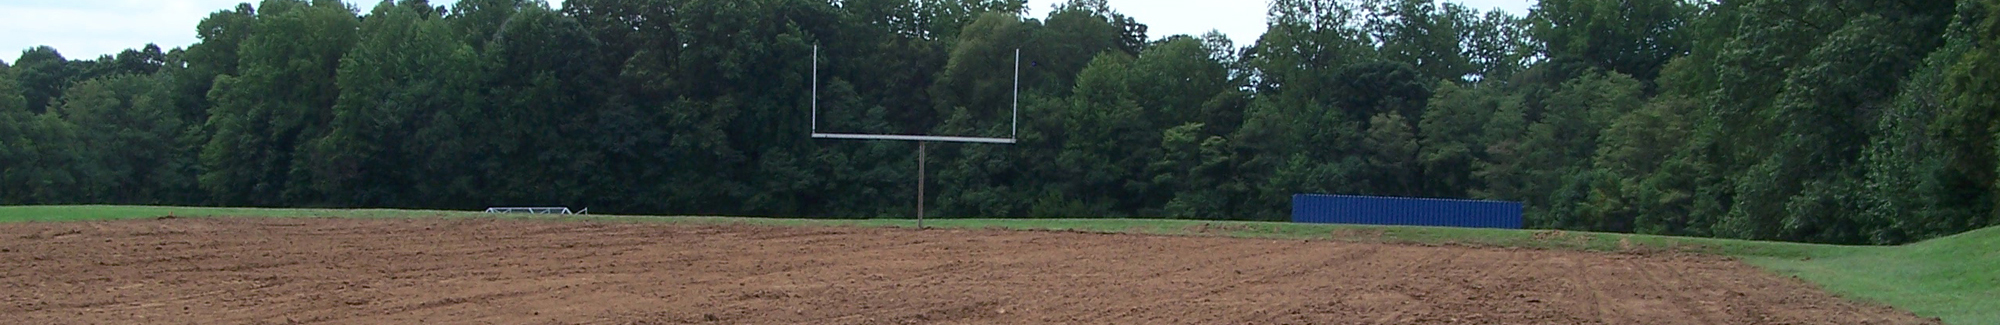 Repaired athletic field.